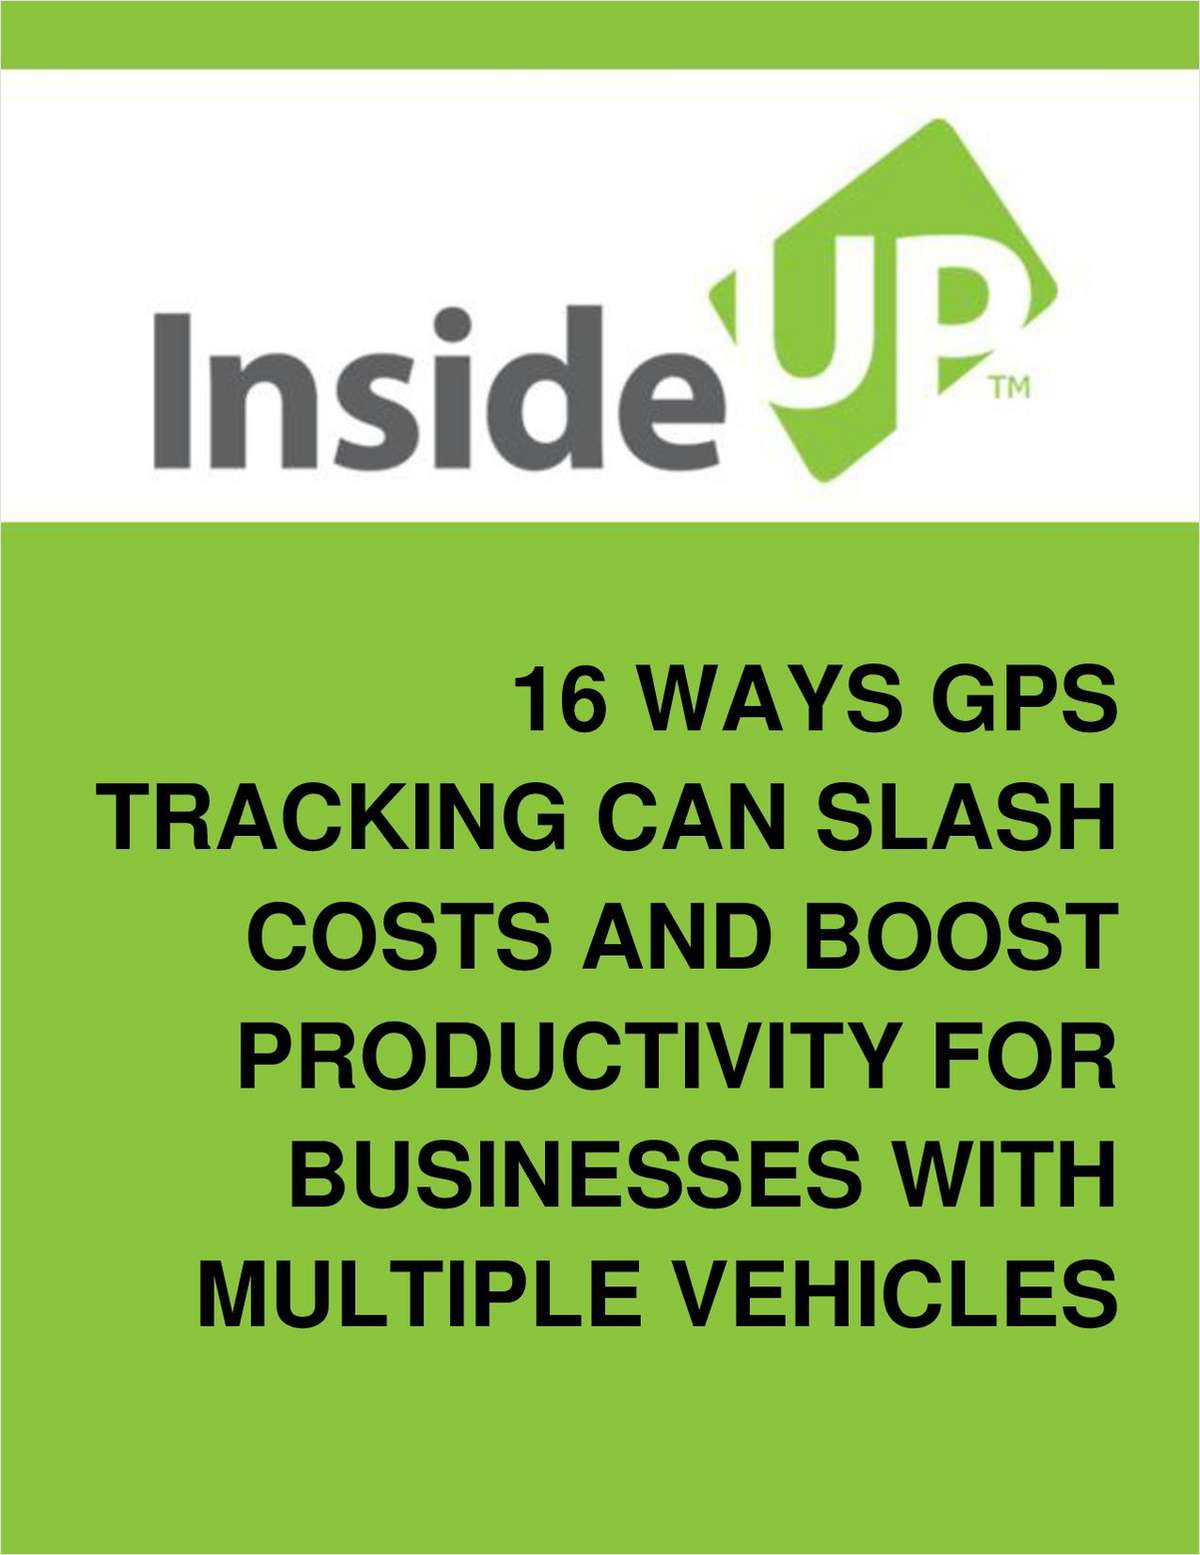 16 Ways GPS Tracking Software Can Slash Costs, Boost Productivity For Businesses With Multiple Vehicles